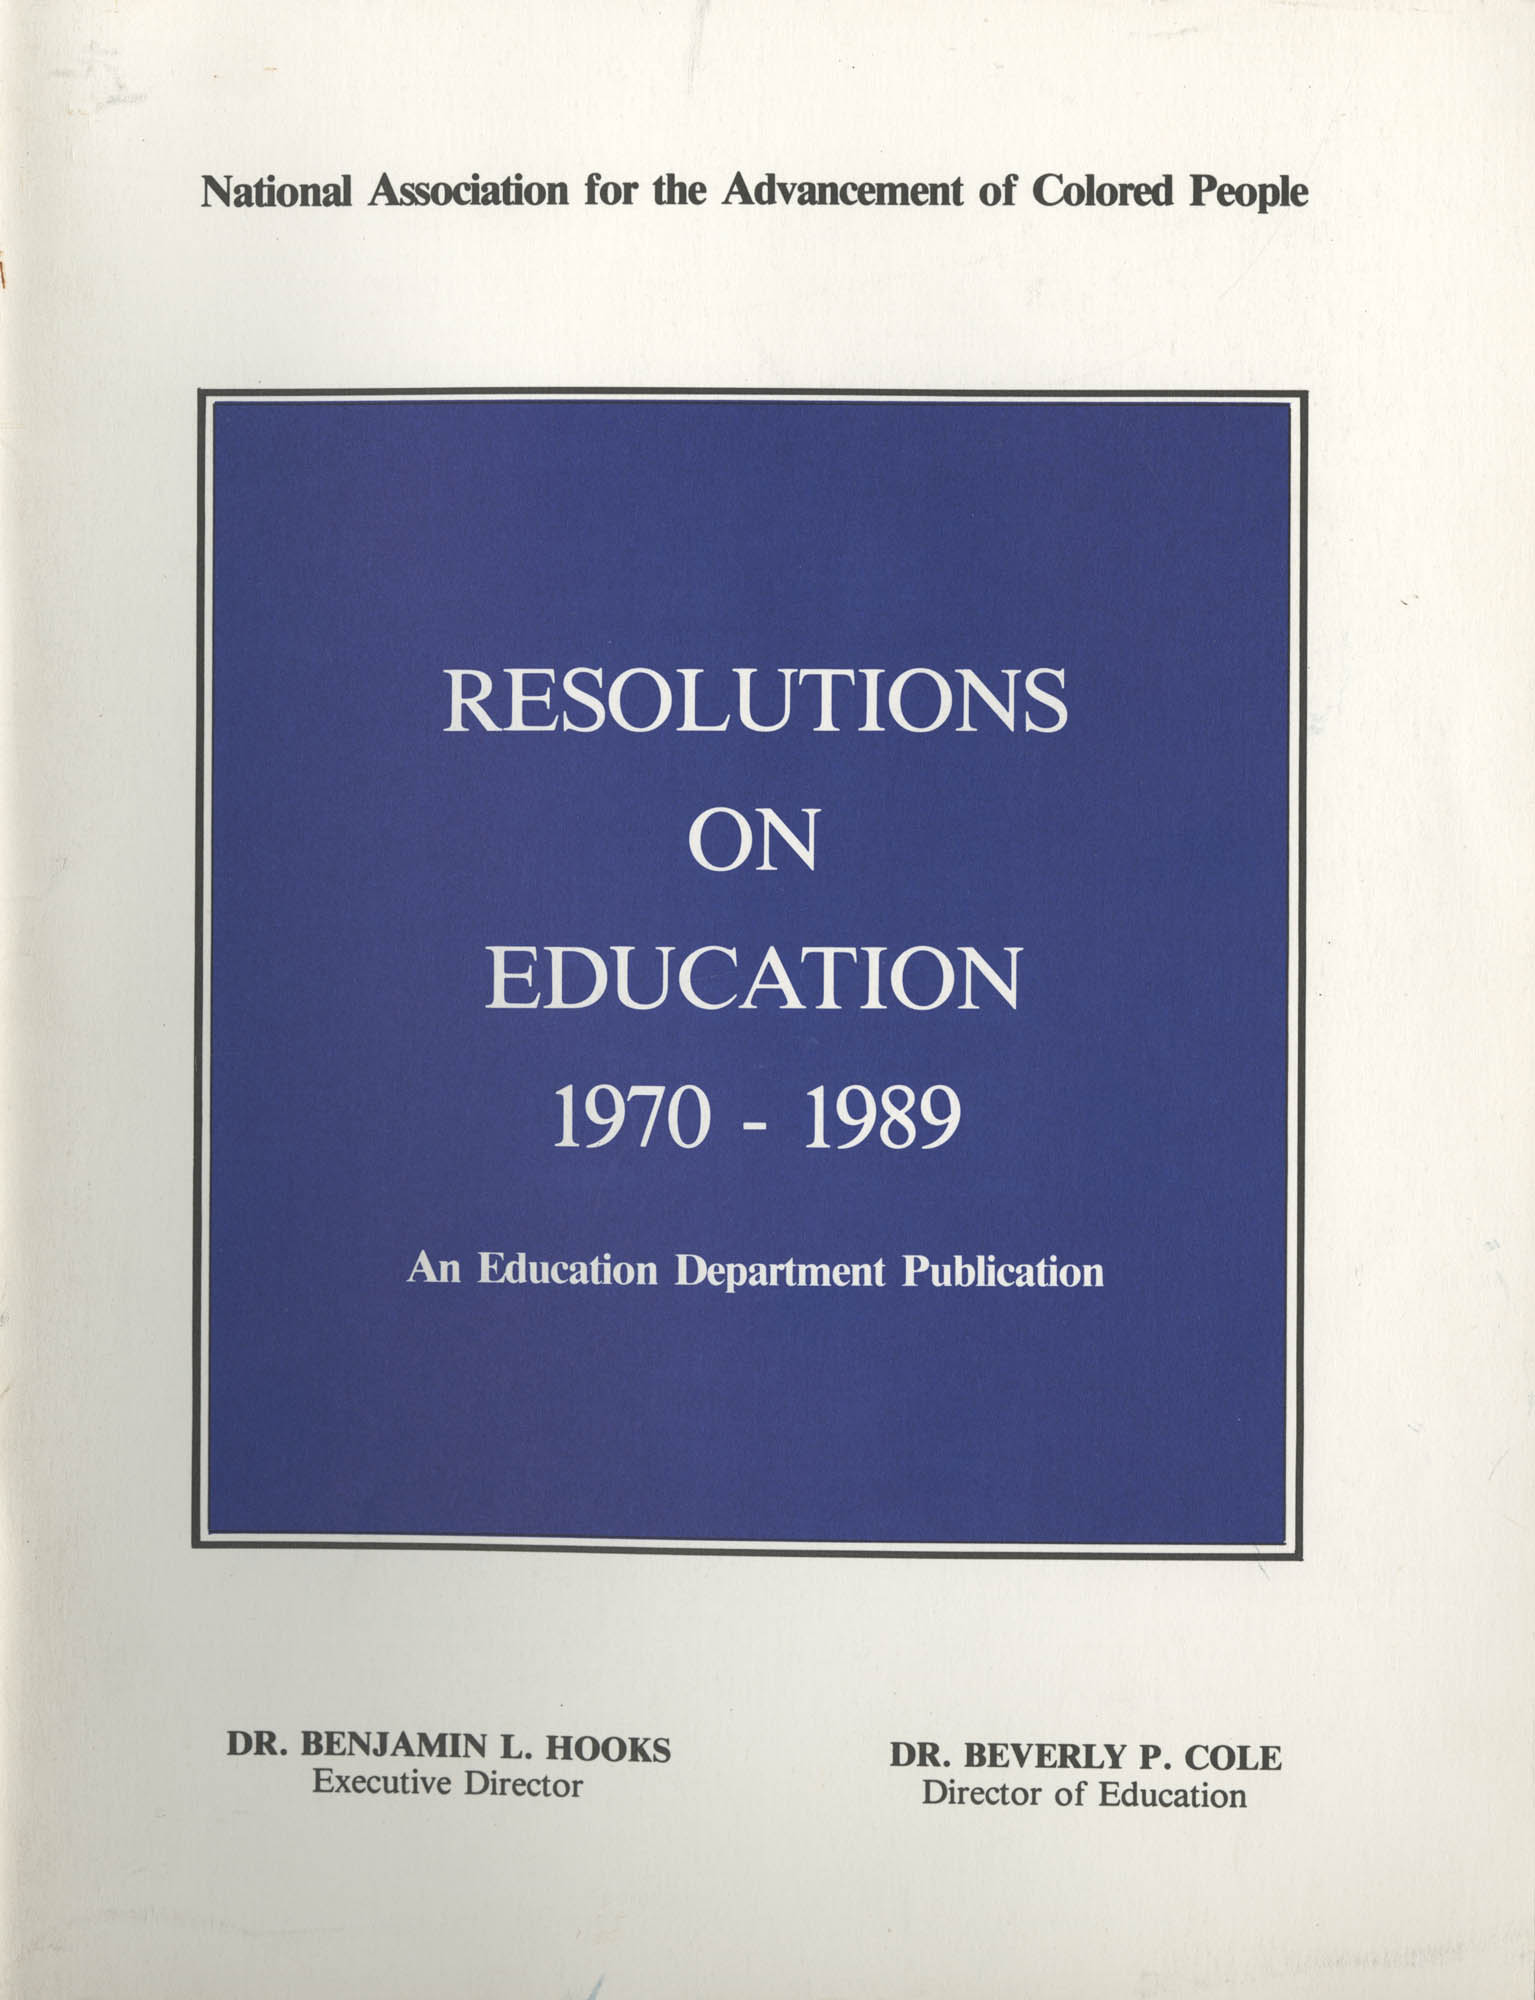 NAACP Resolutions on Education, 1970-1989, Front Cover